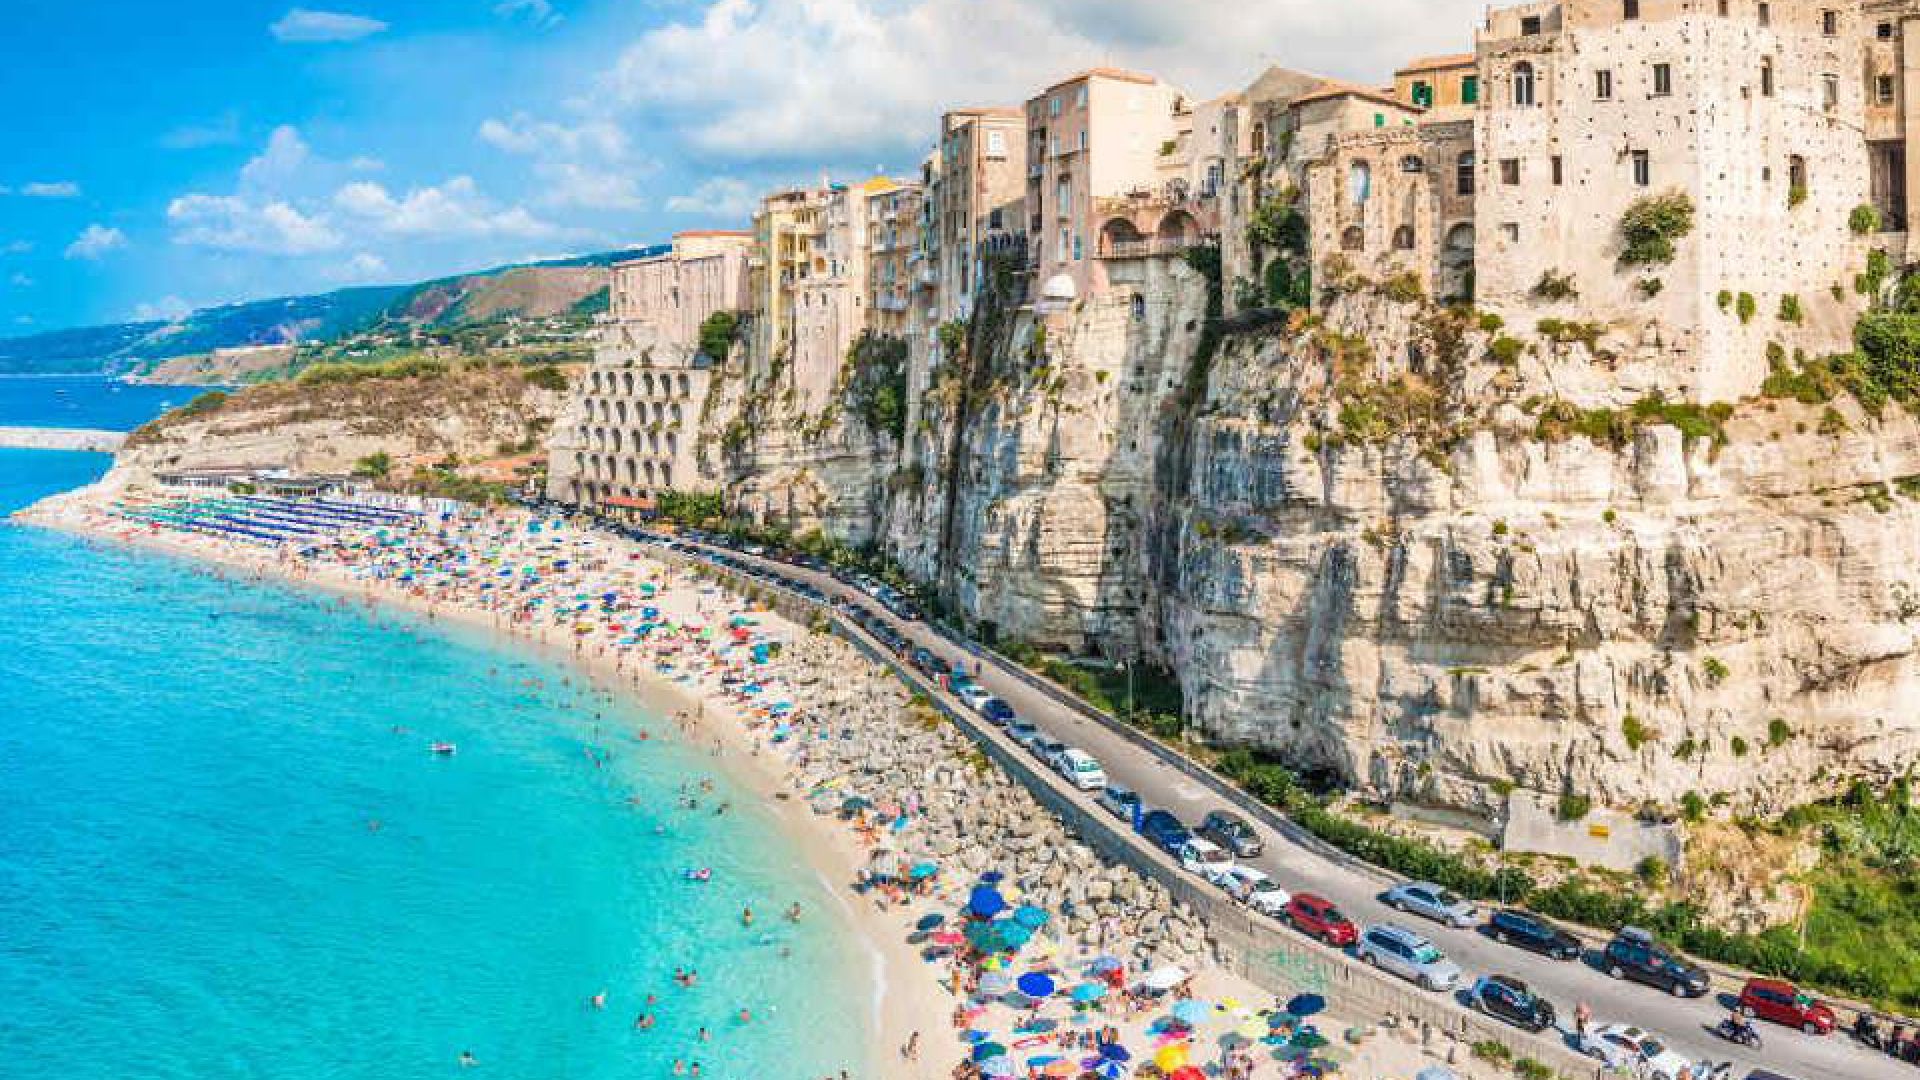 What To Do In Calabria?